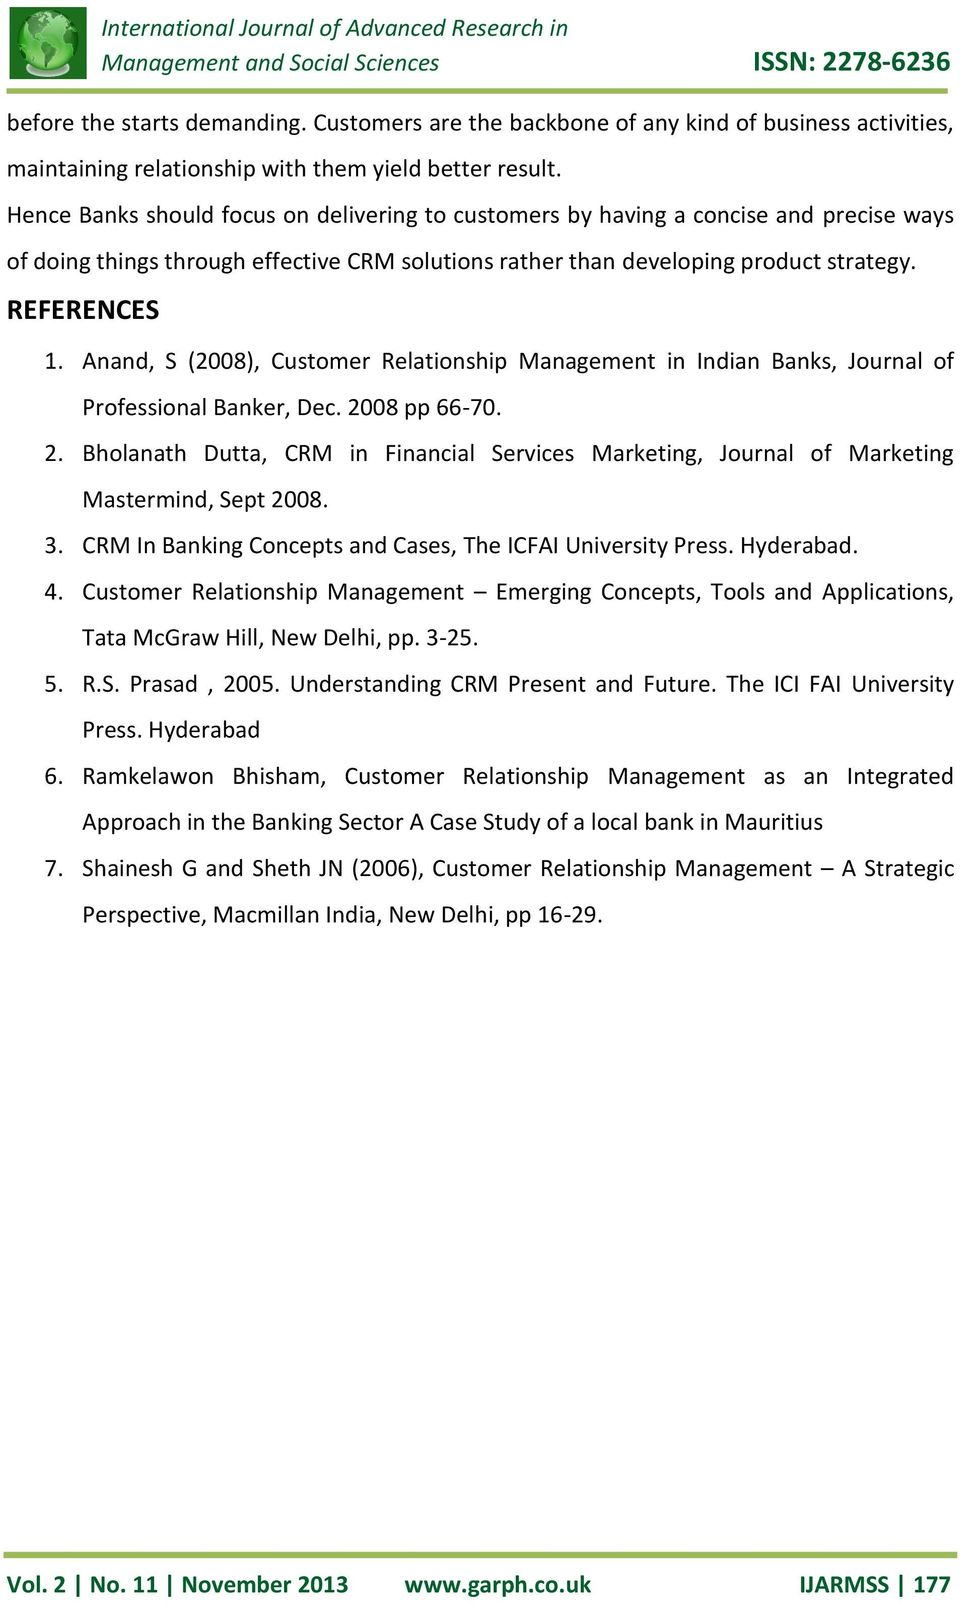 Anand, S (2008), Customer Relationship Management in Indian Banks, Journal of Professional Banker, Dec. 20